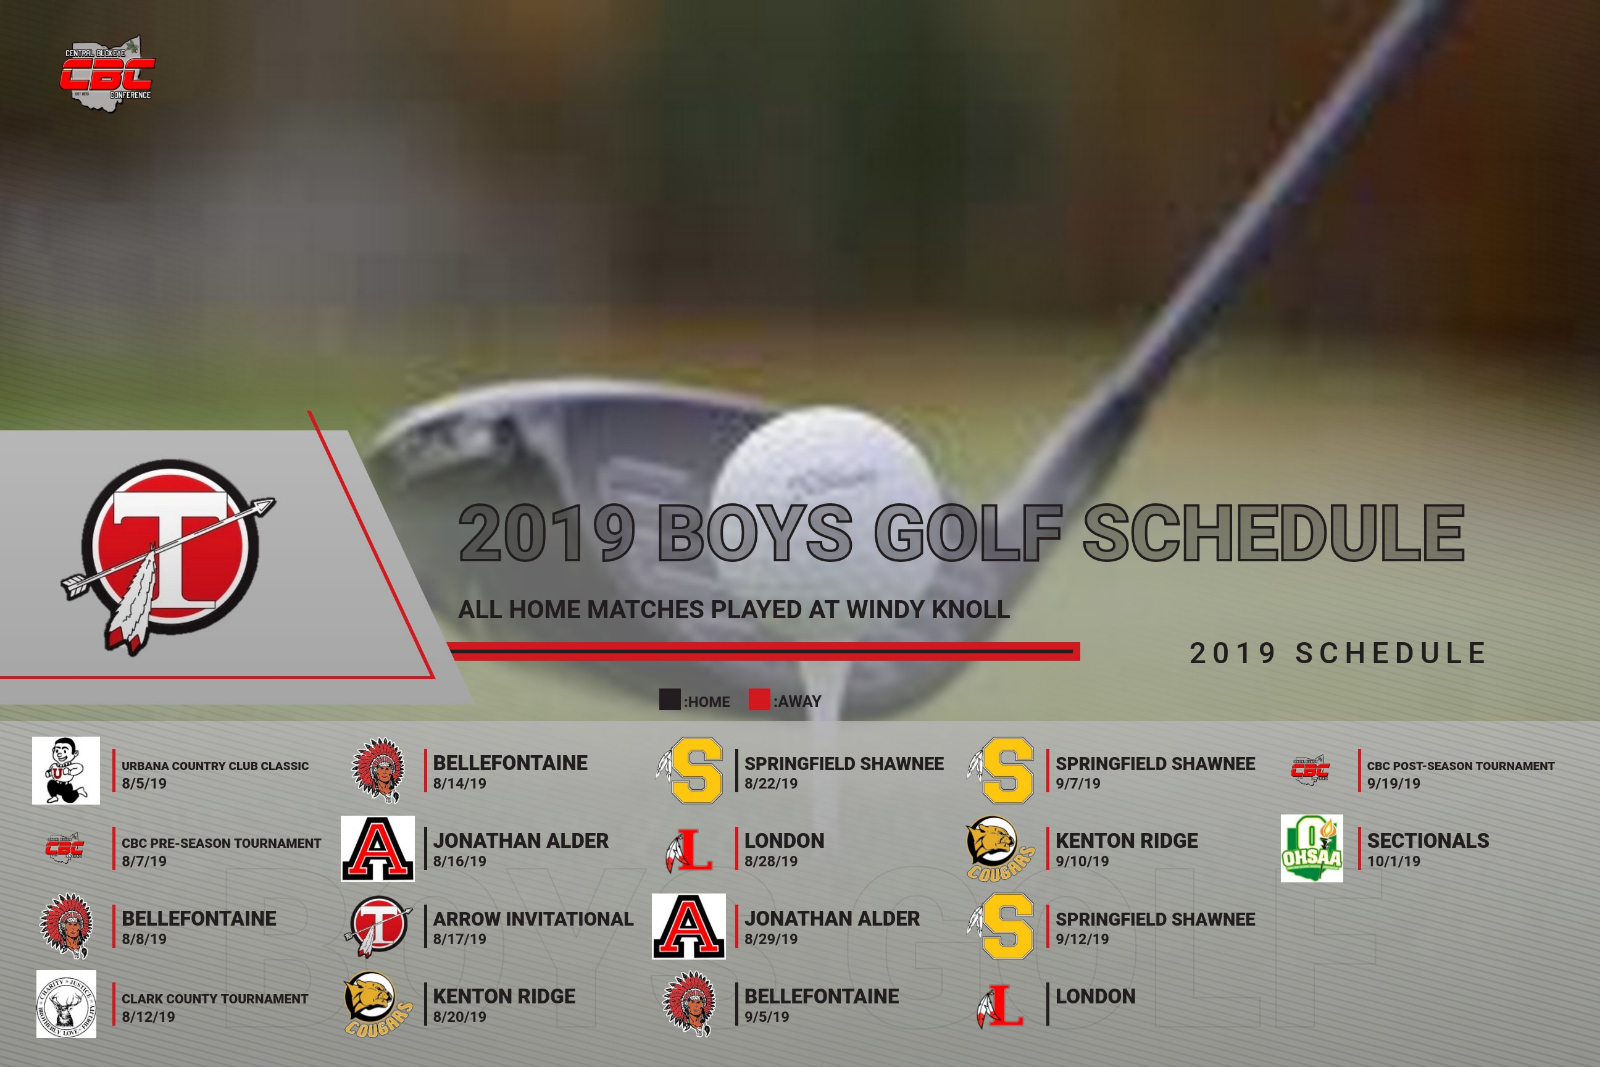 2019 Boys Golf Schedule